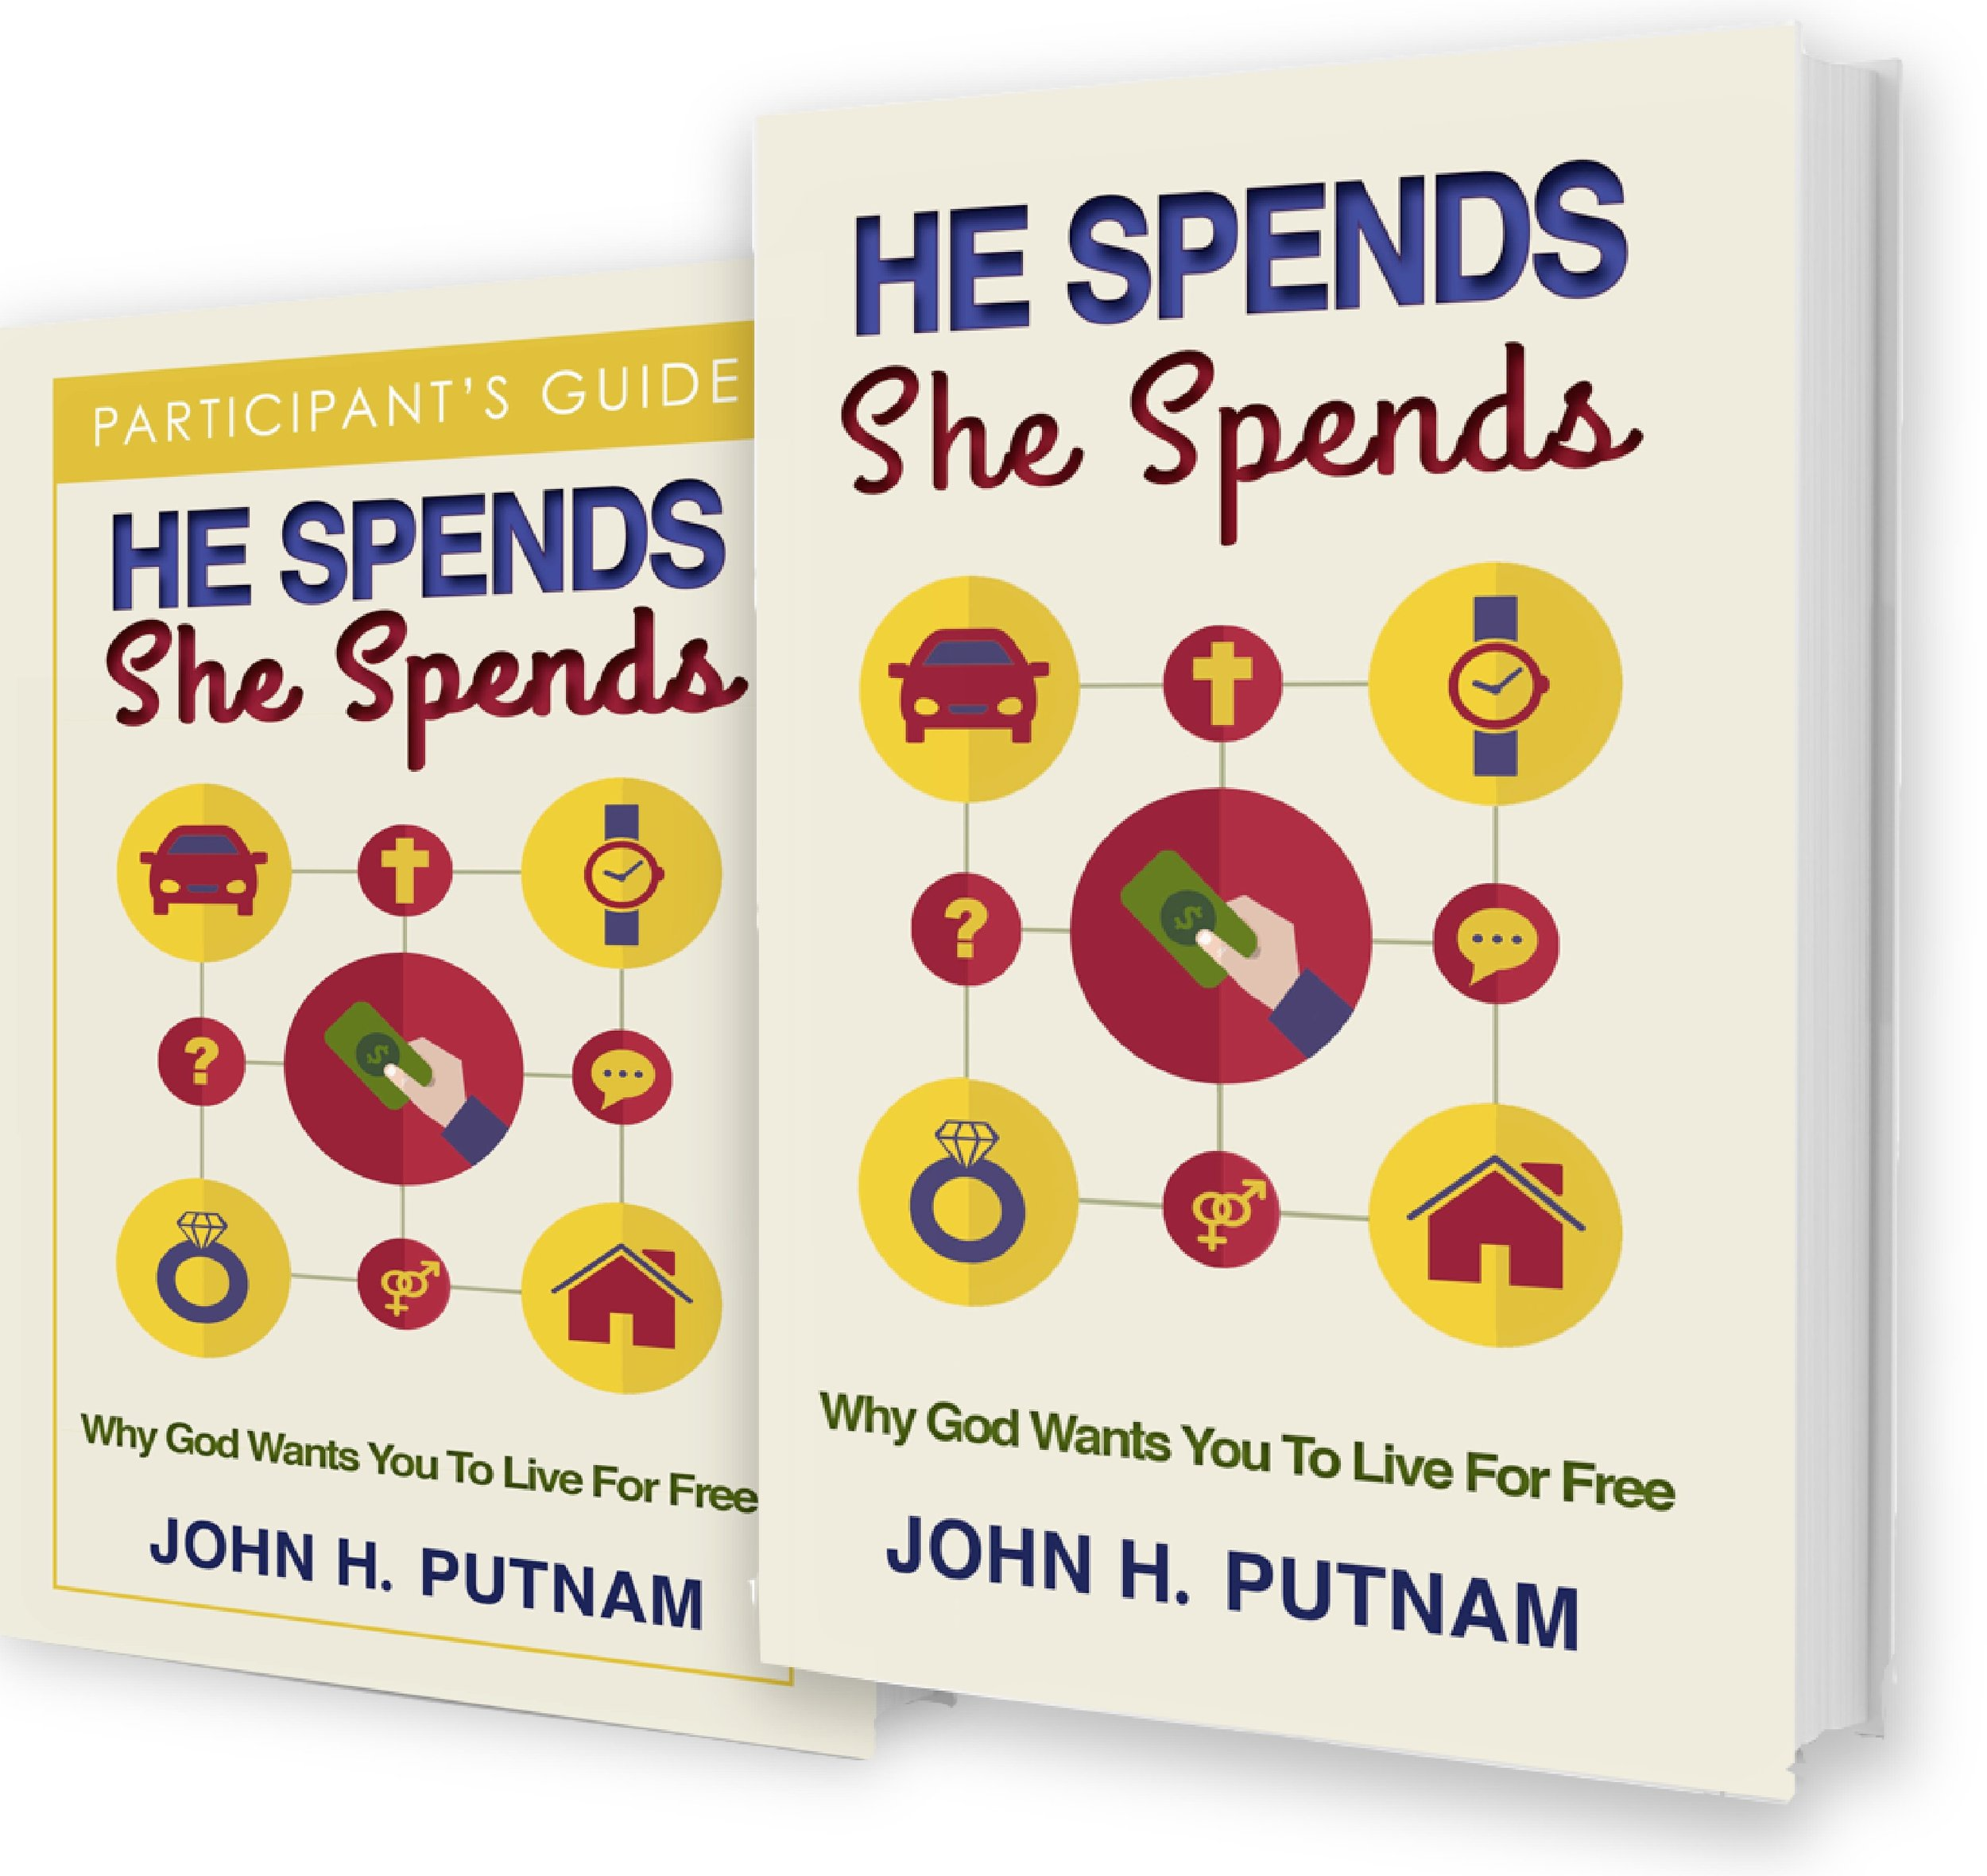 He Spends She Spends Bundle pic.jpg